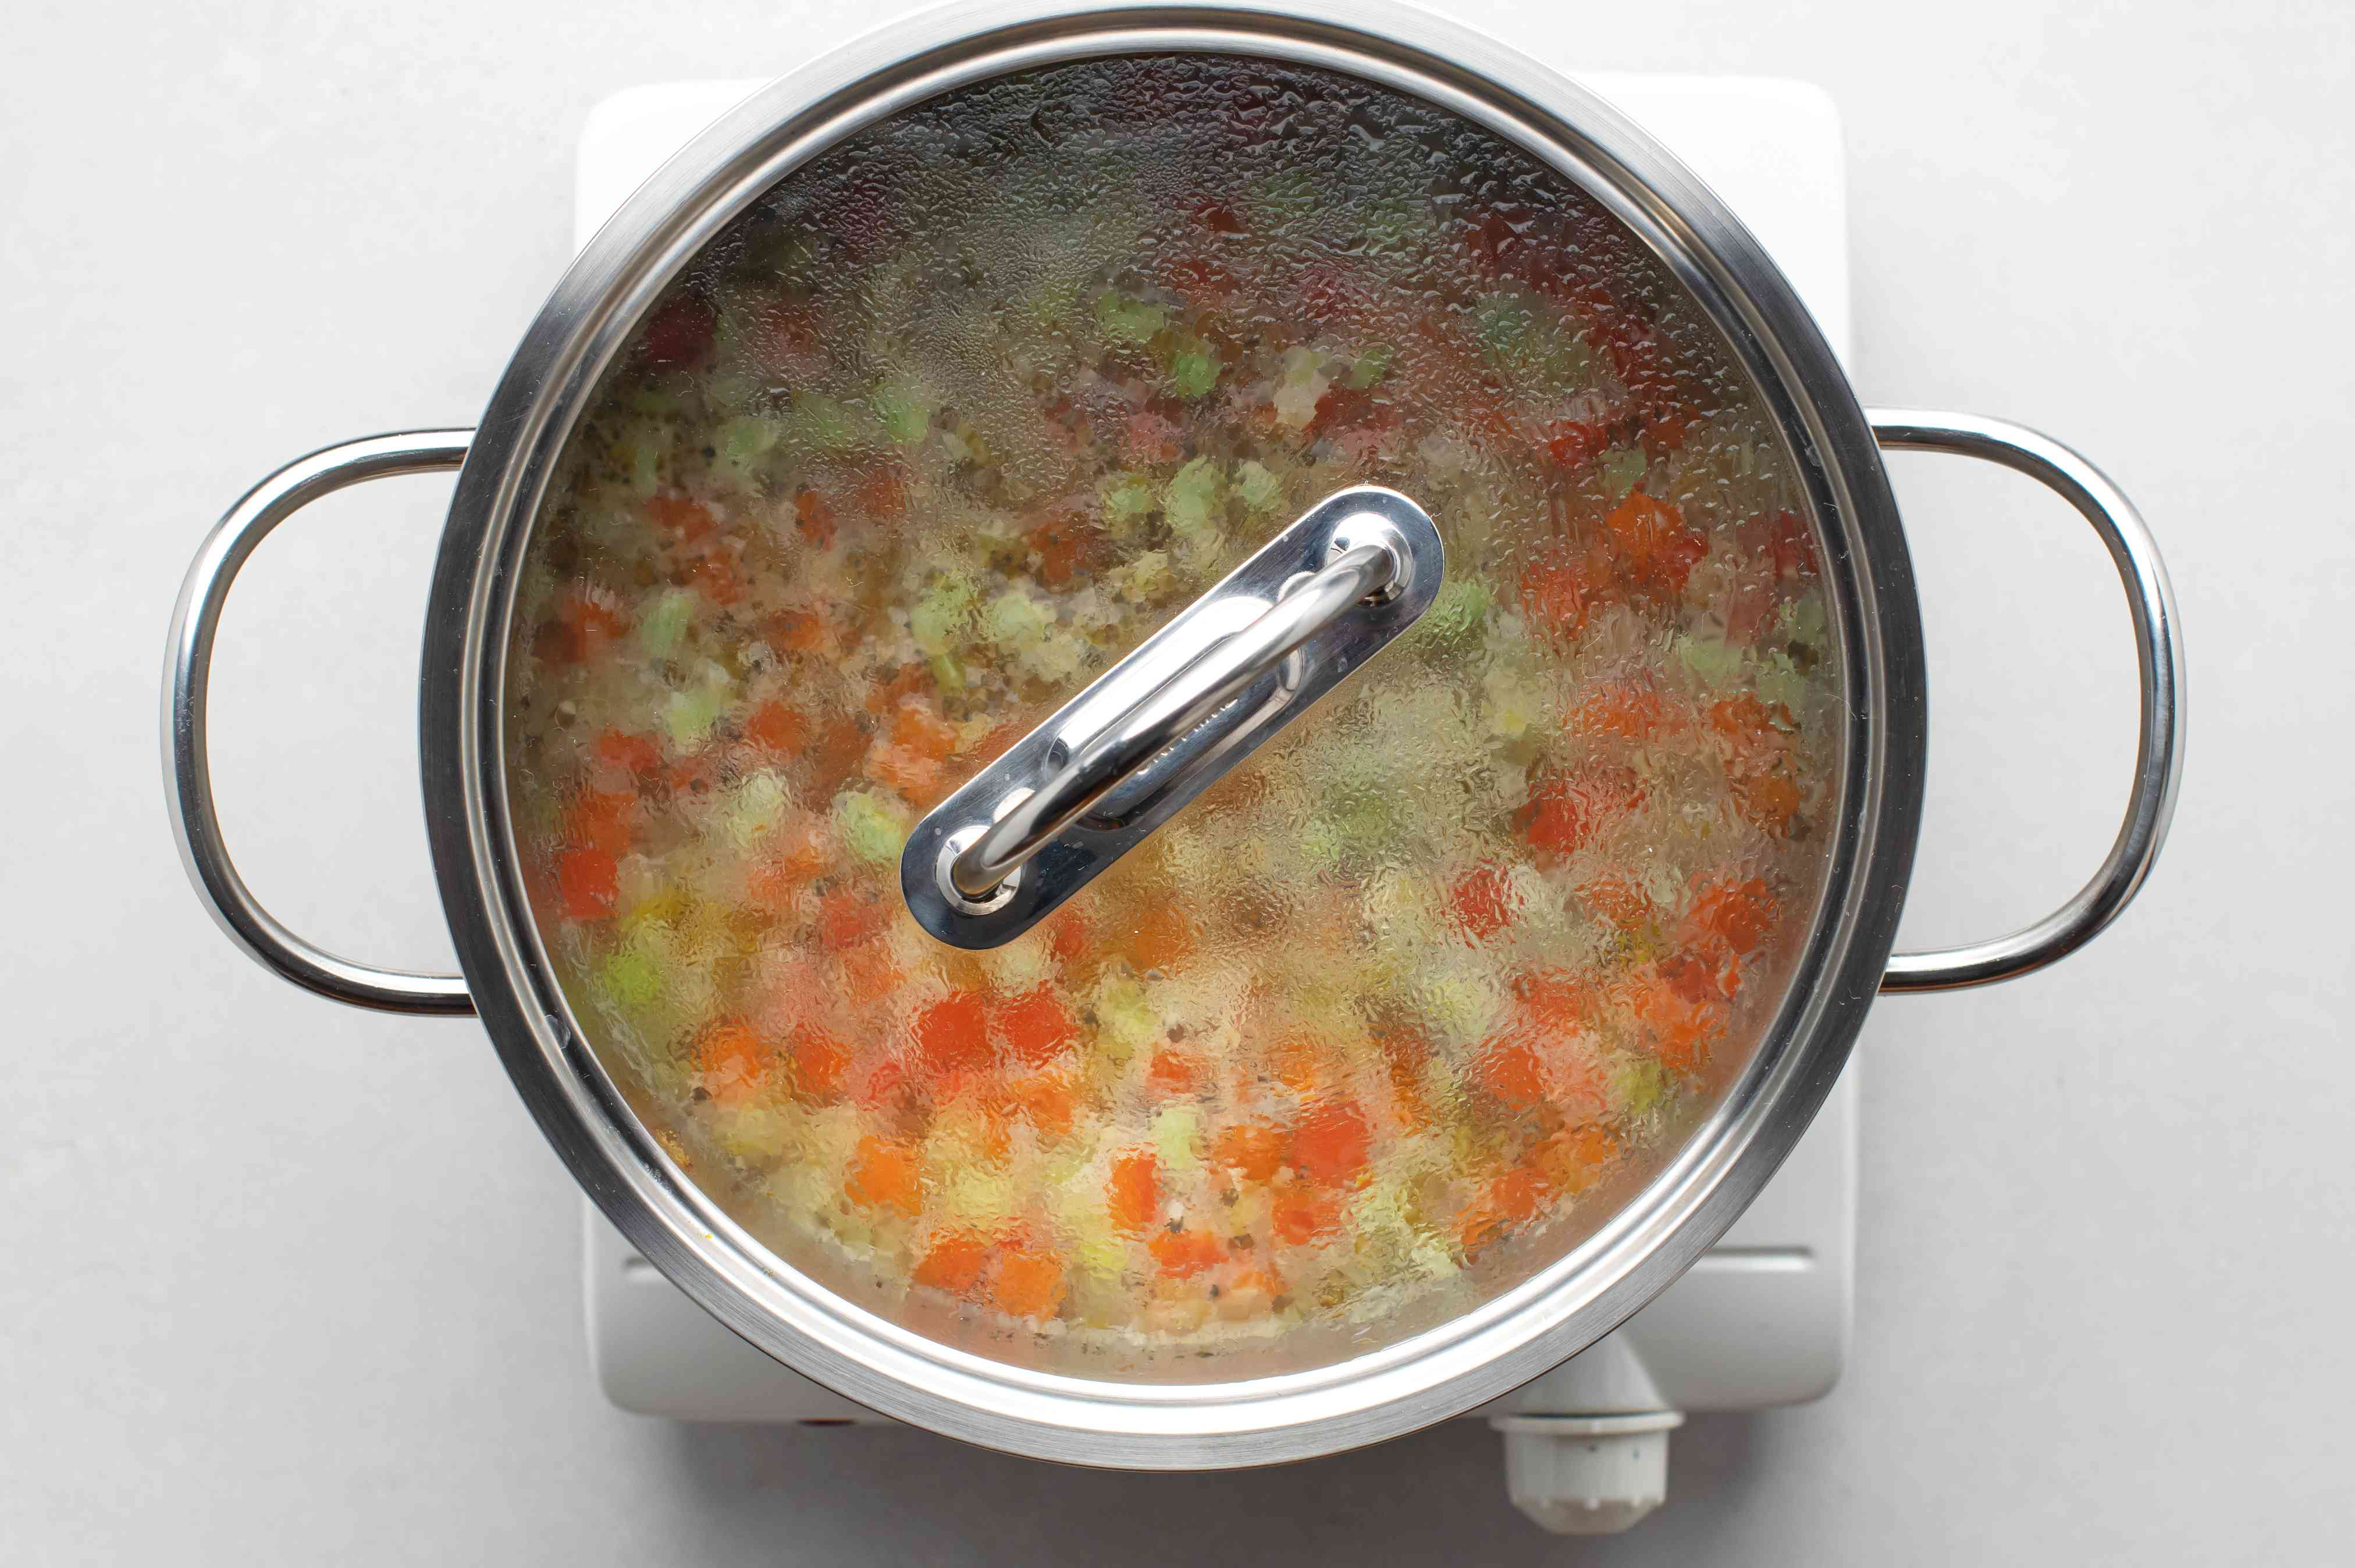 bean soup cooking in a pot